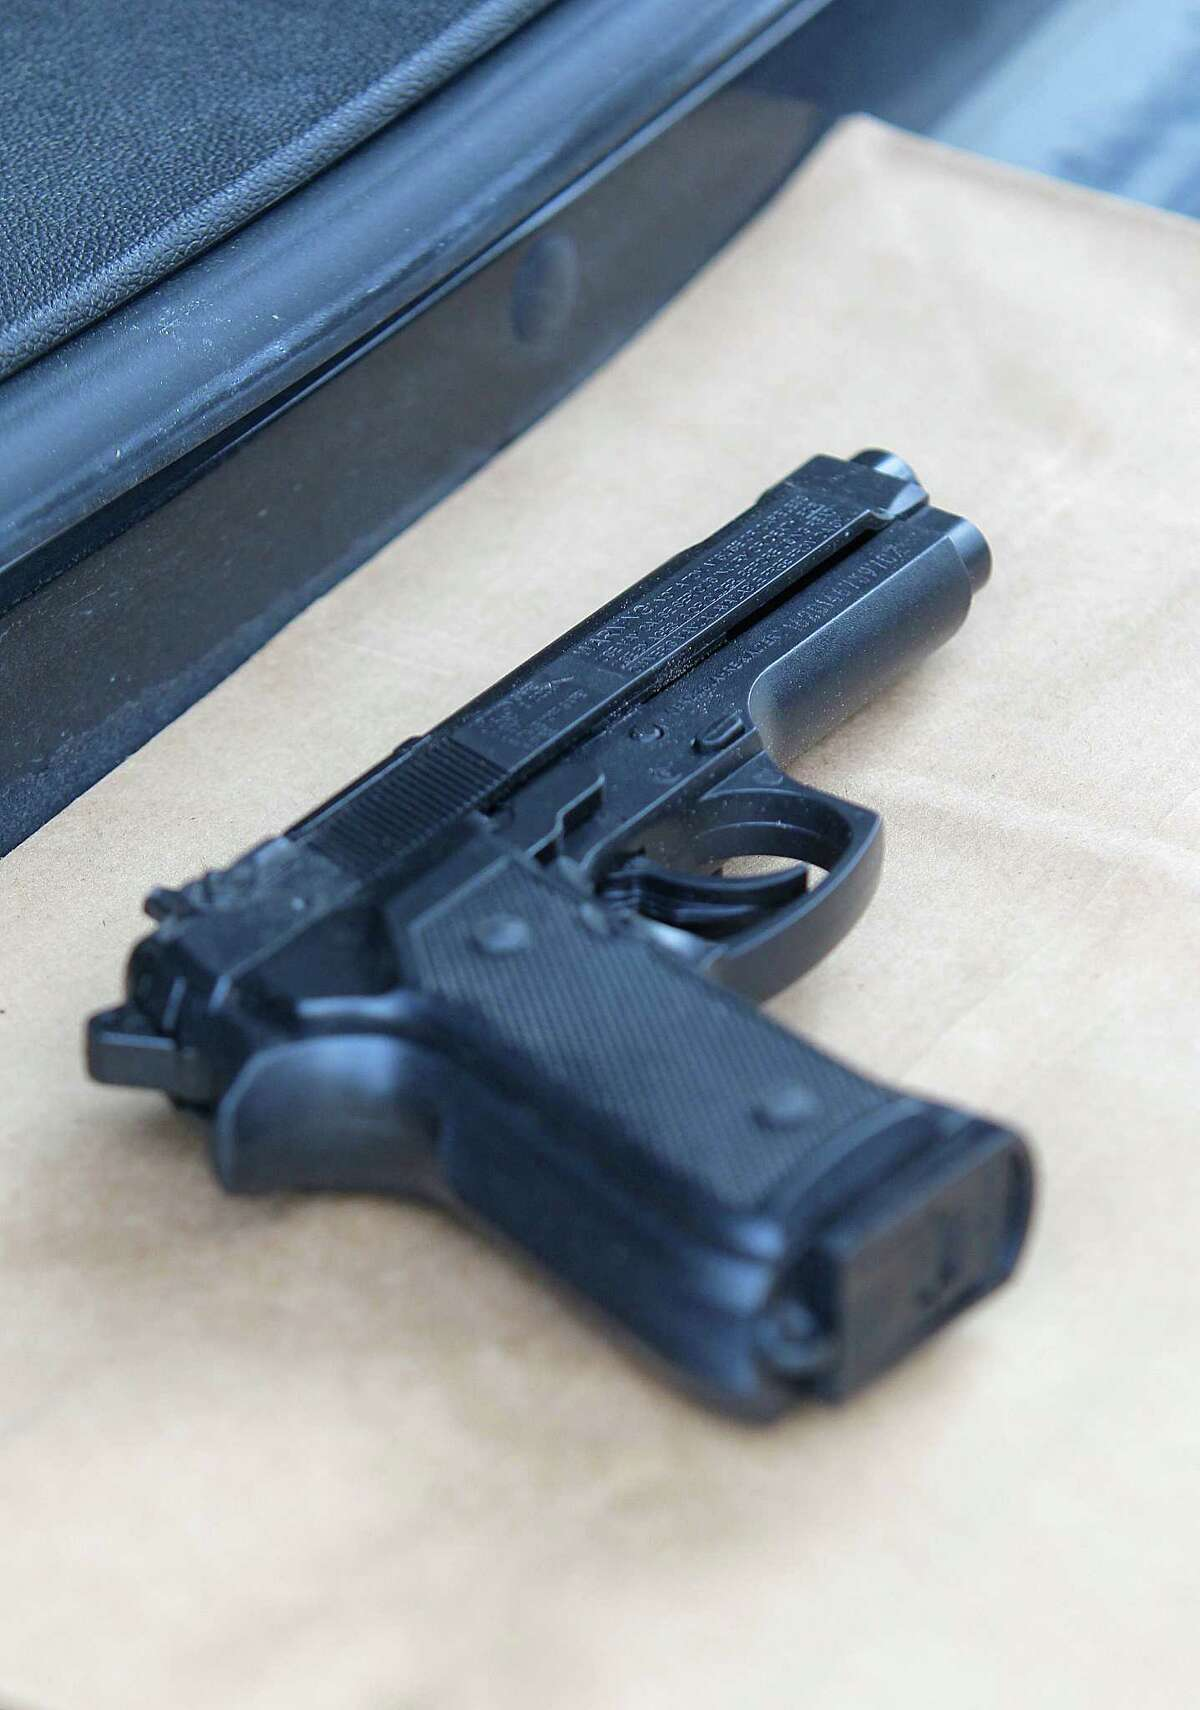 Police who shot and wounded a man say he had in his waistband a pellet gun that looked like a handgun, Sunday, July 24, 2016.